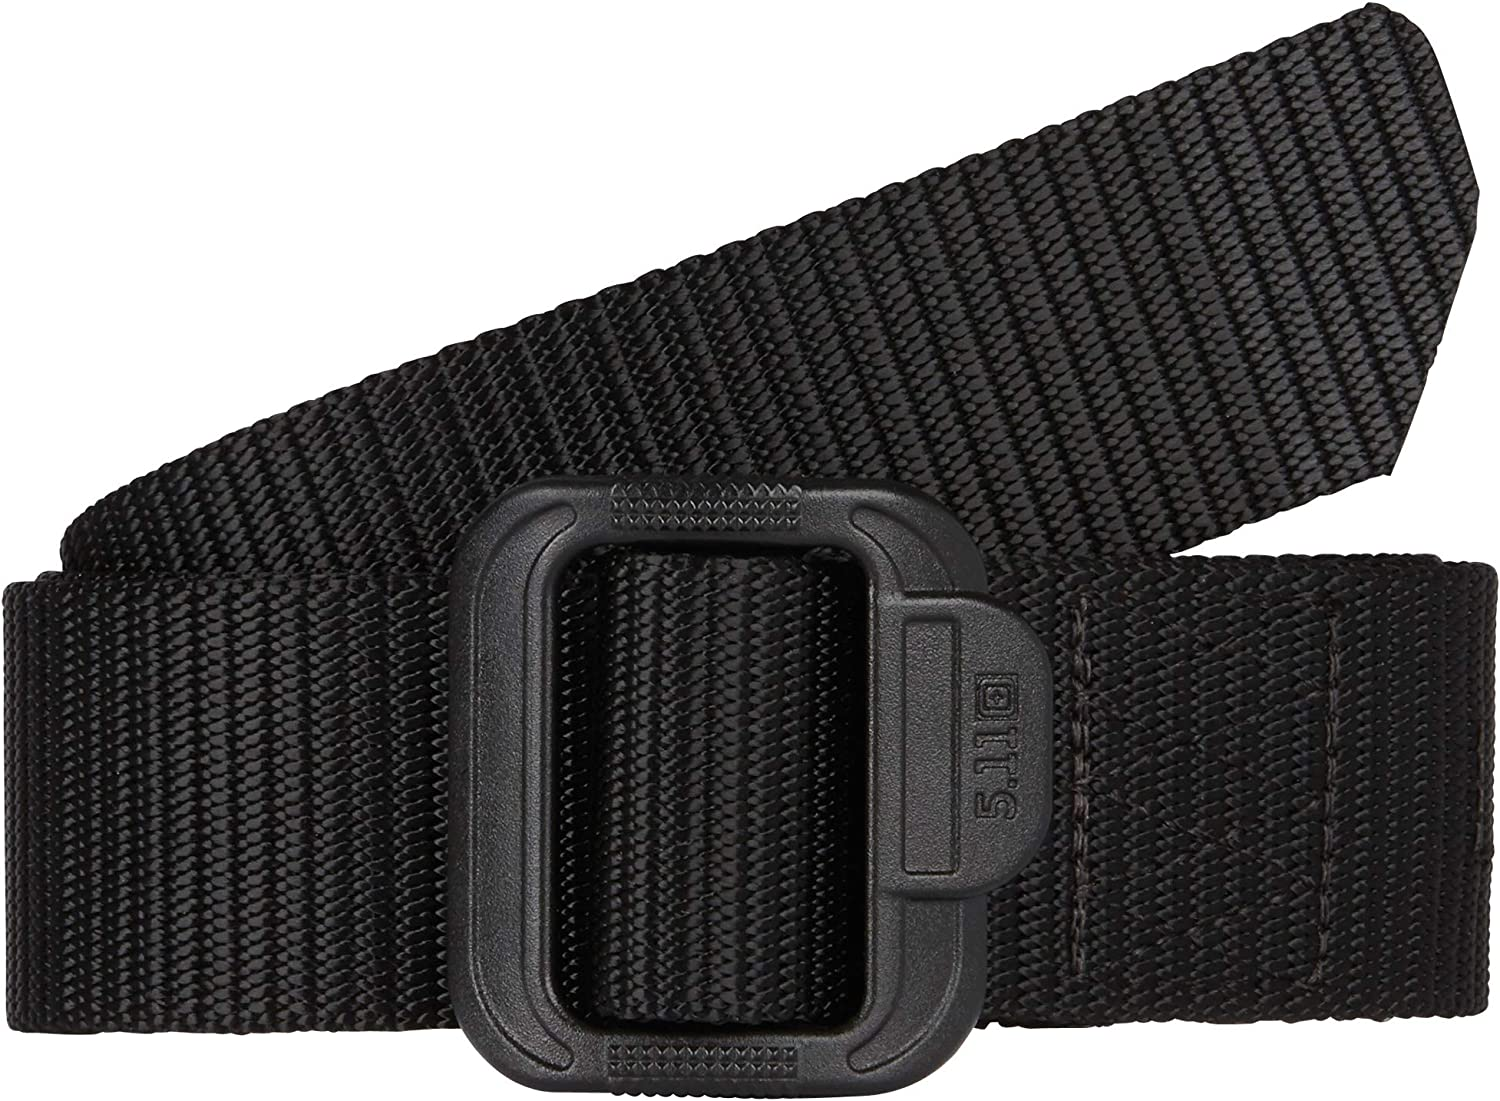 5.11 Tactical Men's 1.5-Inch Convertible TDU Belt, Nylon Webbing, Fade-and Fray-Resistant, Style 59551